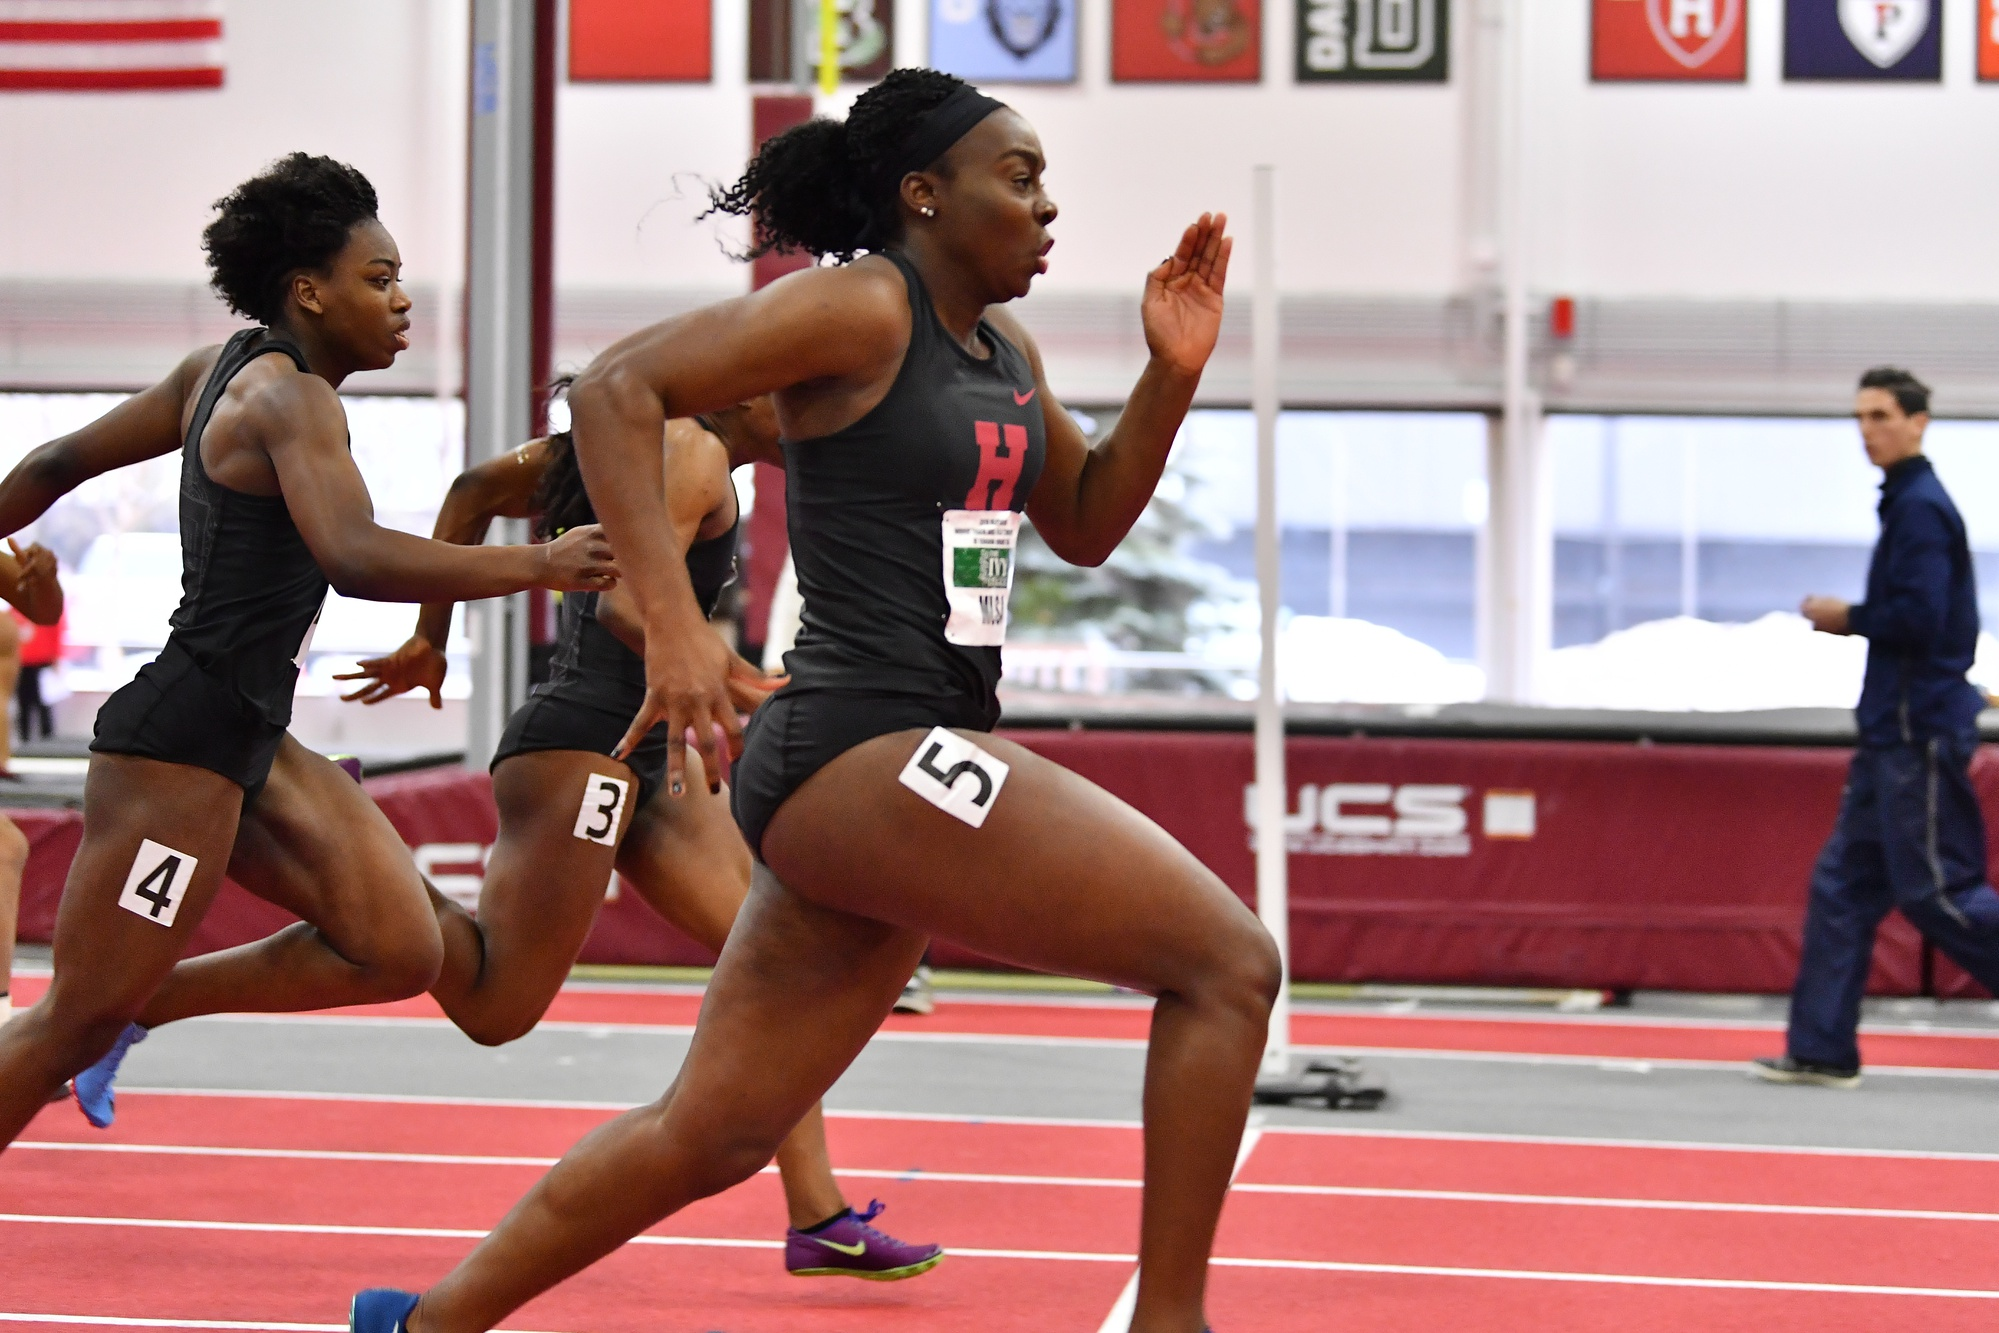 Ngozi Musa, who won the 60m dash, is also one of the captains for Harvard.